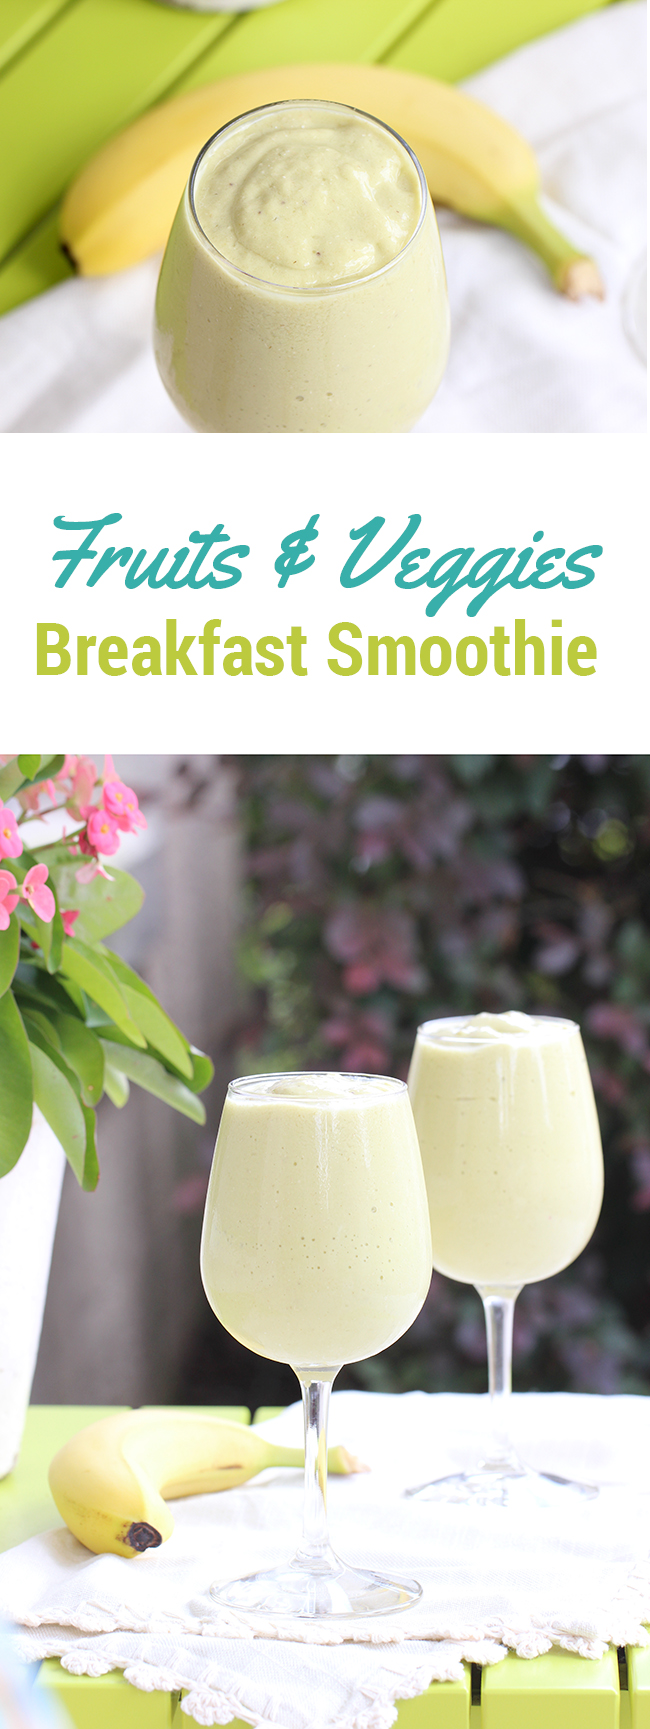 Need a quick fix for breakfast? Try this easy and delish breakfast smoothie with fruits & veggies!